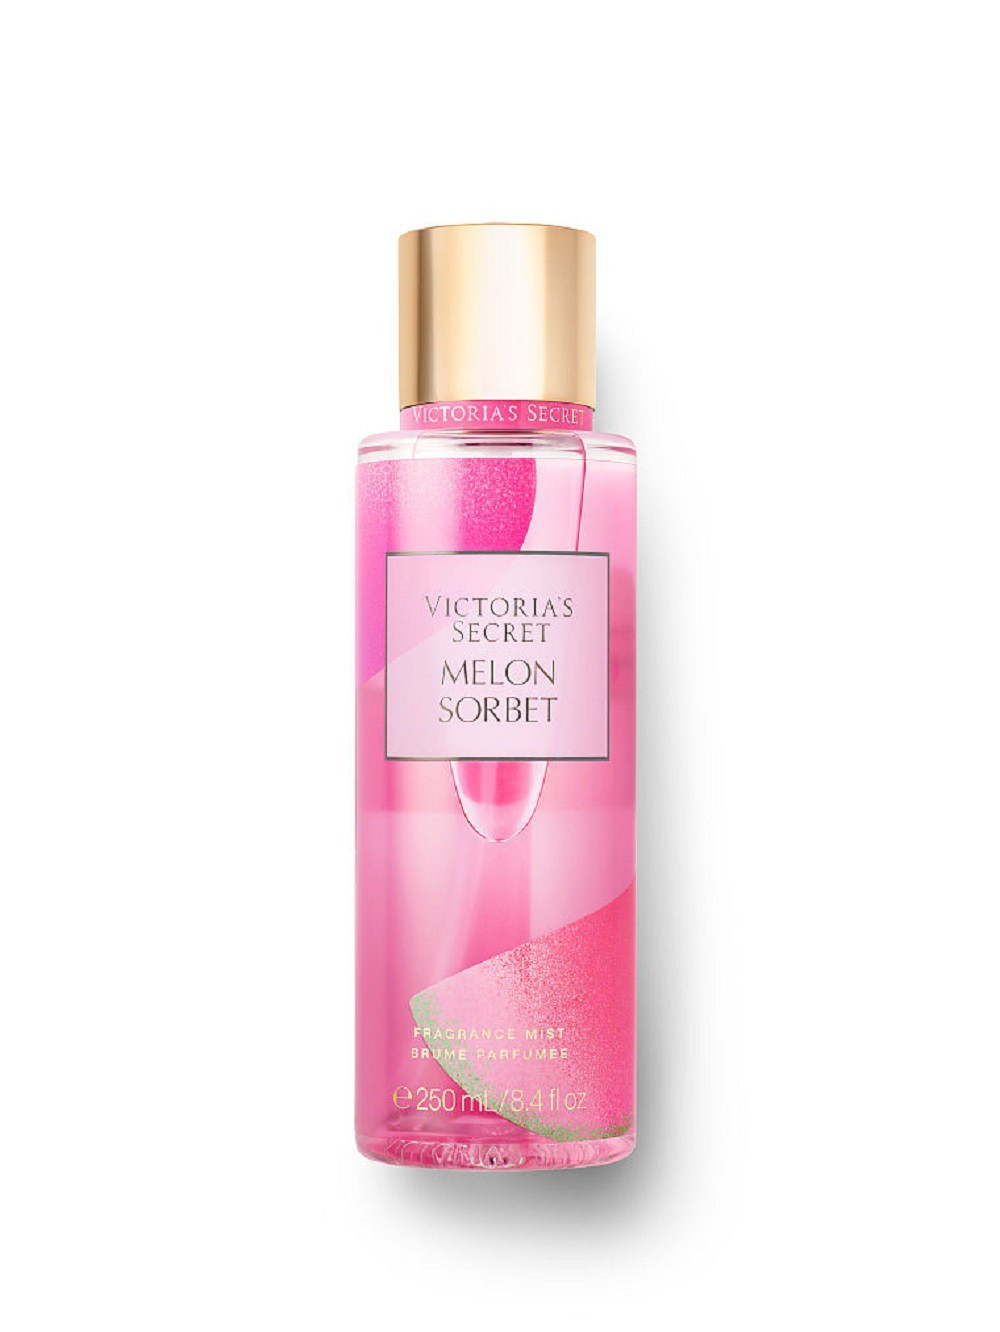 BODY SPLASH MELON SORBET 250ml VICTORIA'S SECRET